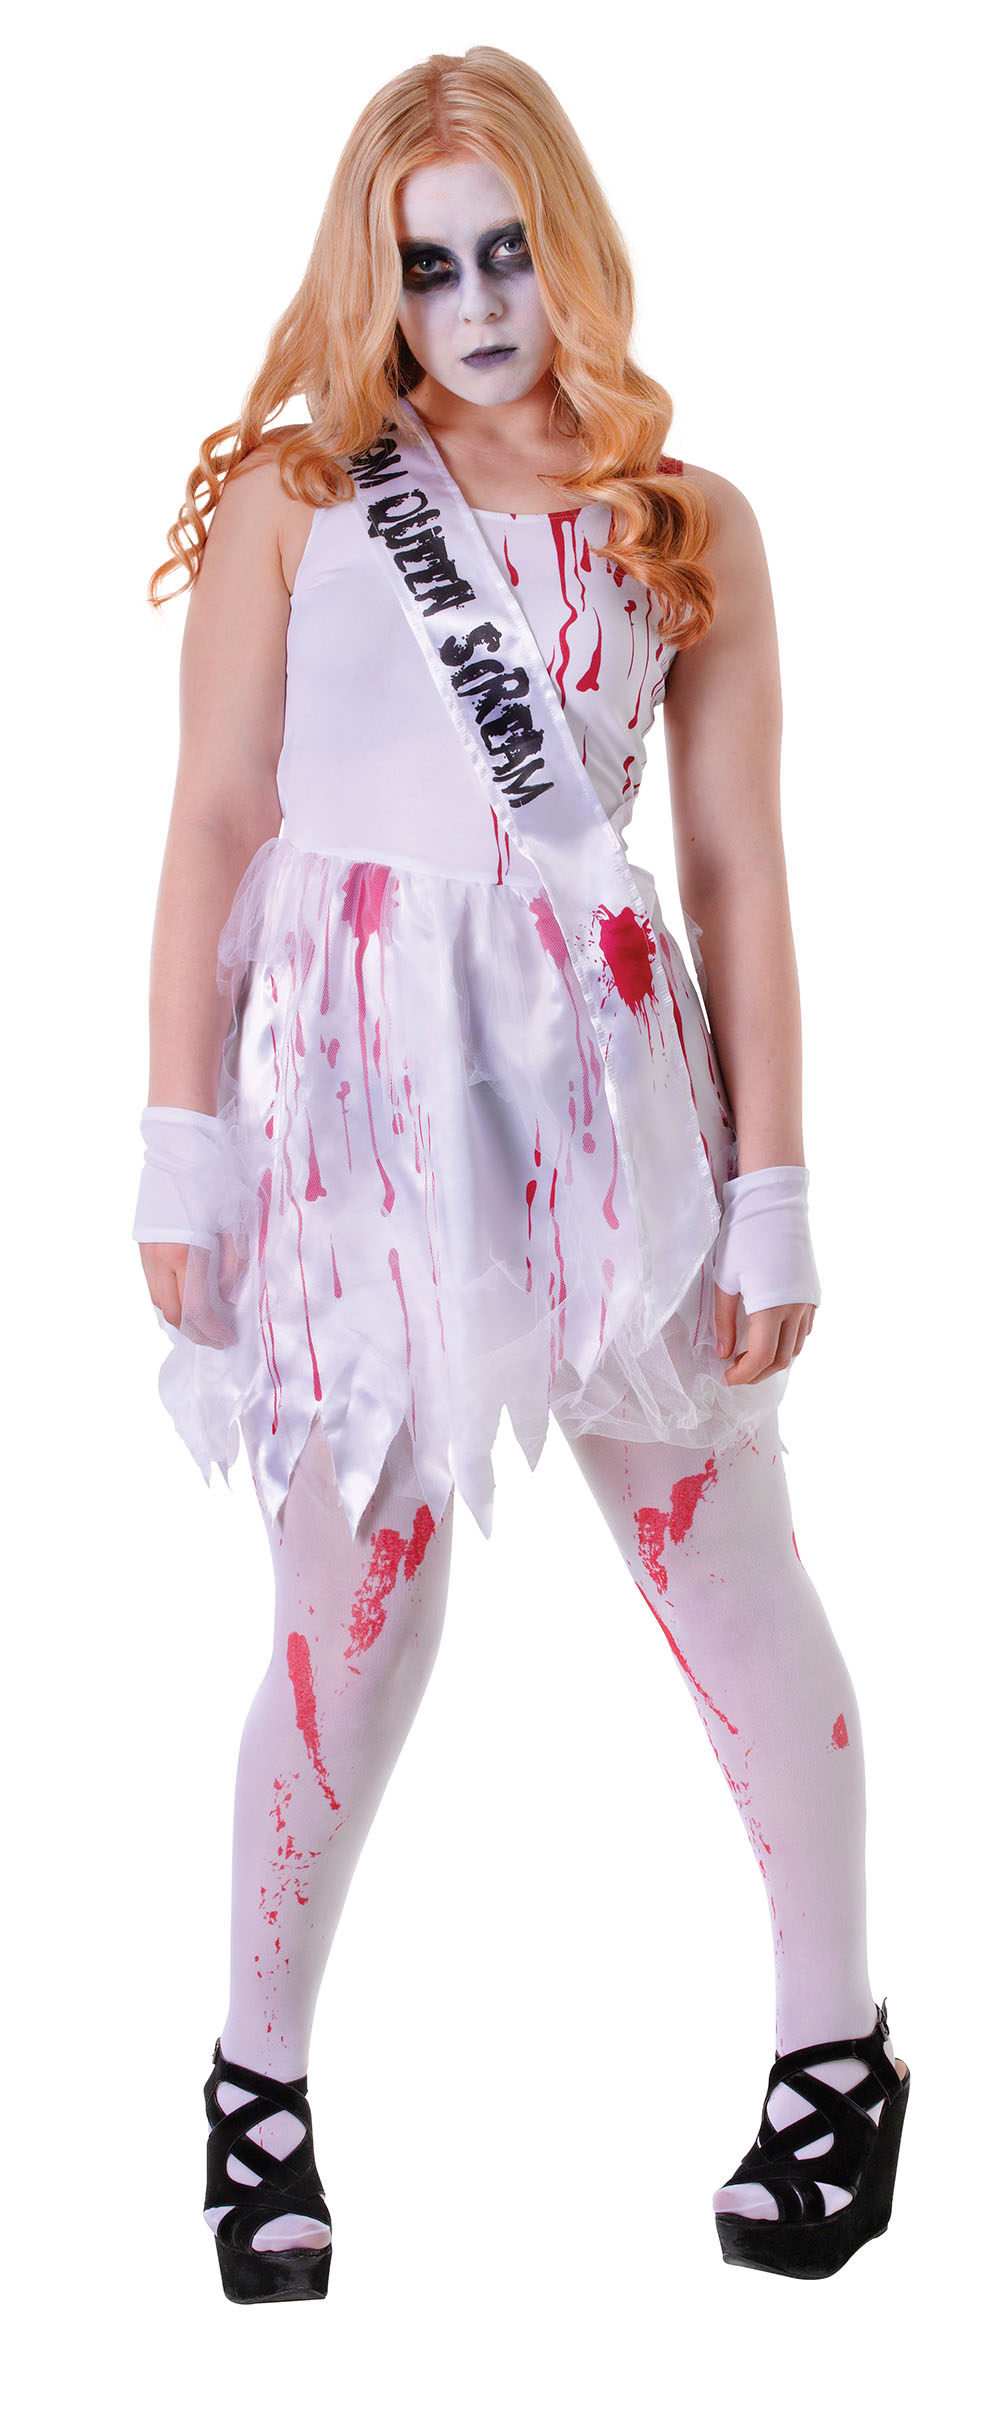 Kids Bloody High School Prom Date Girls Halloween Party Fancy ...